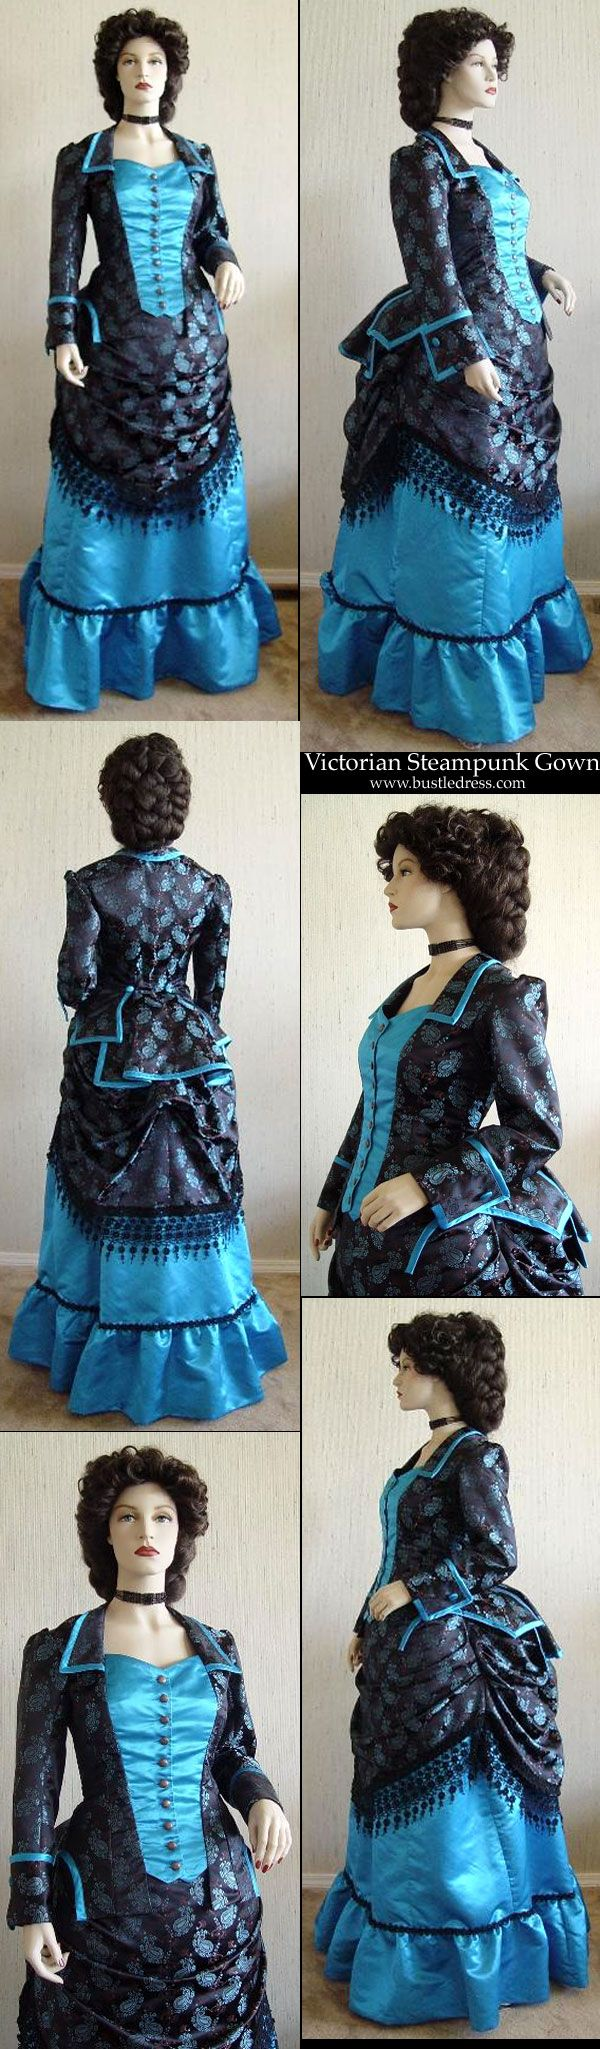 I like the detail of the trim on the overskirt..